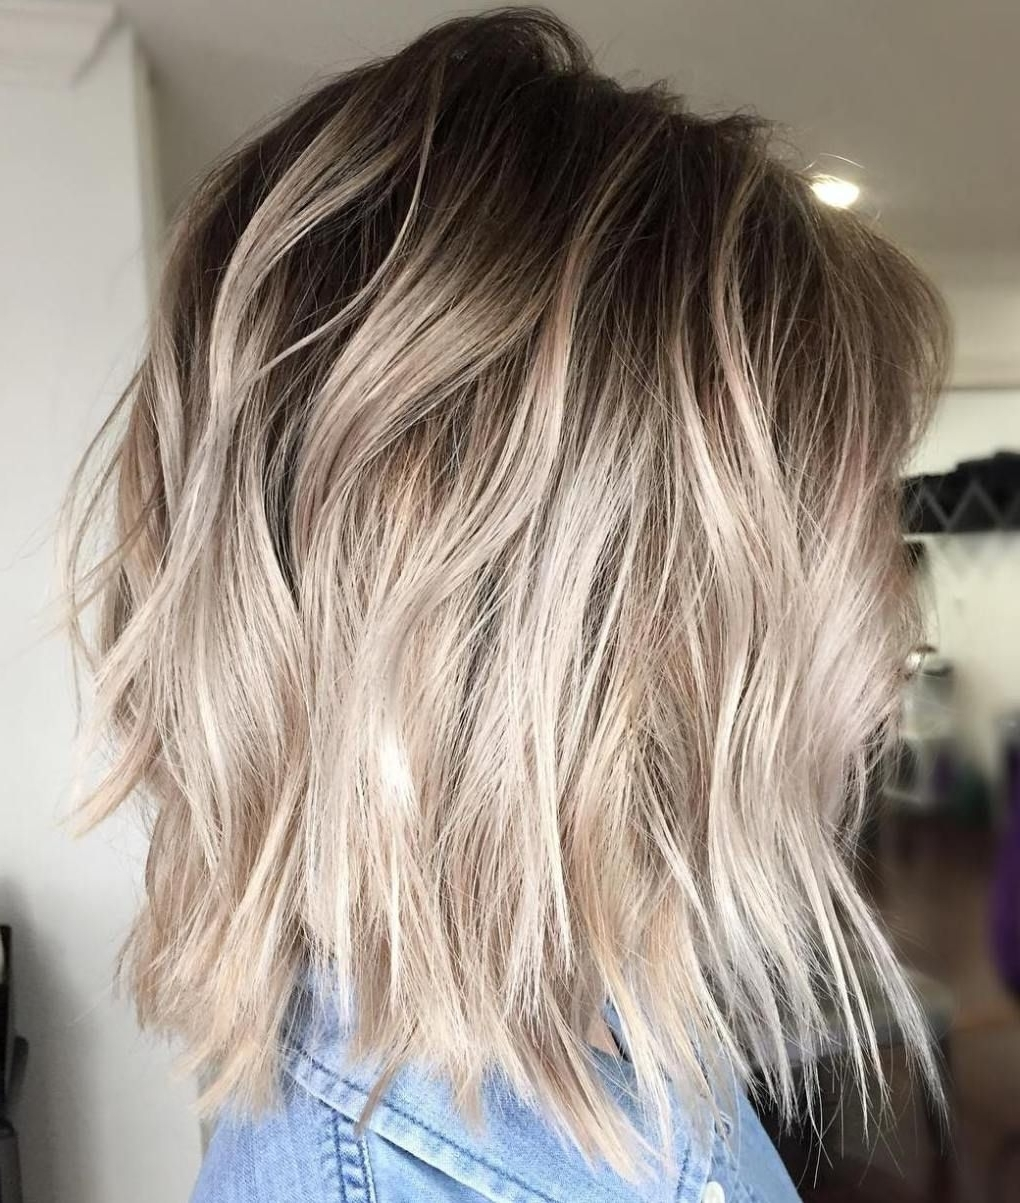 Well Known Root Fade Into Blonde Hairstyles For 40 Beautiful Blonde Balayage Looks In (View 19 of 20)